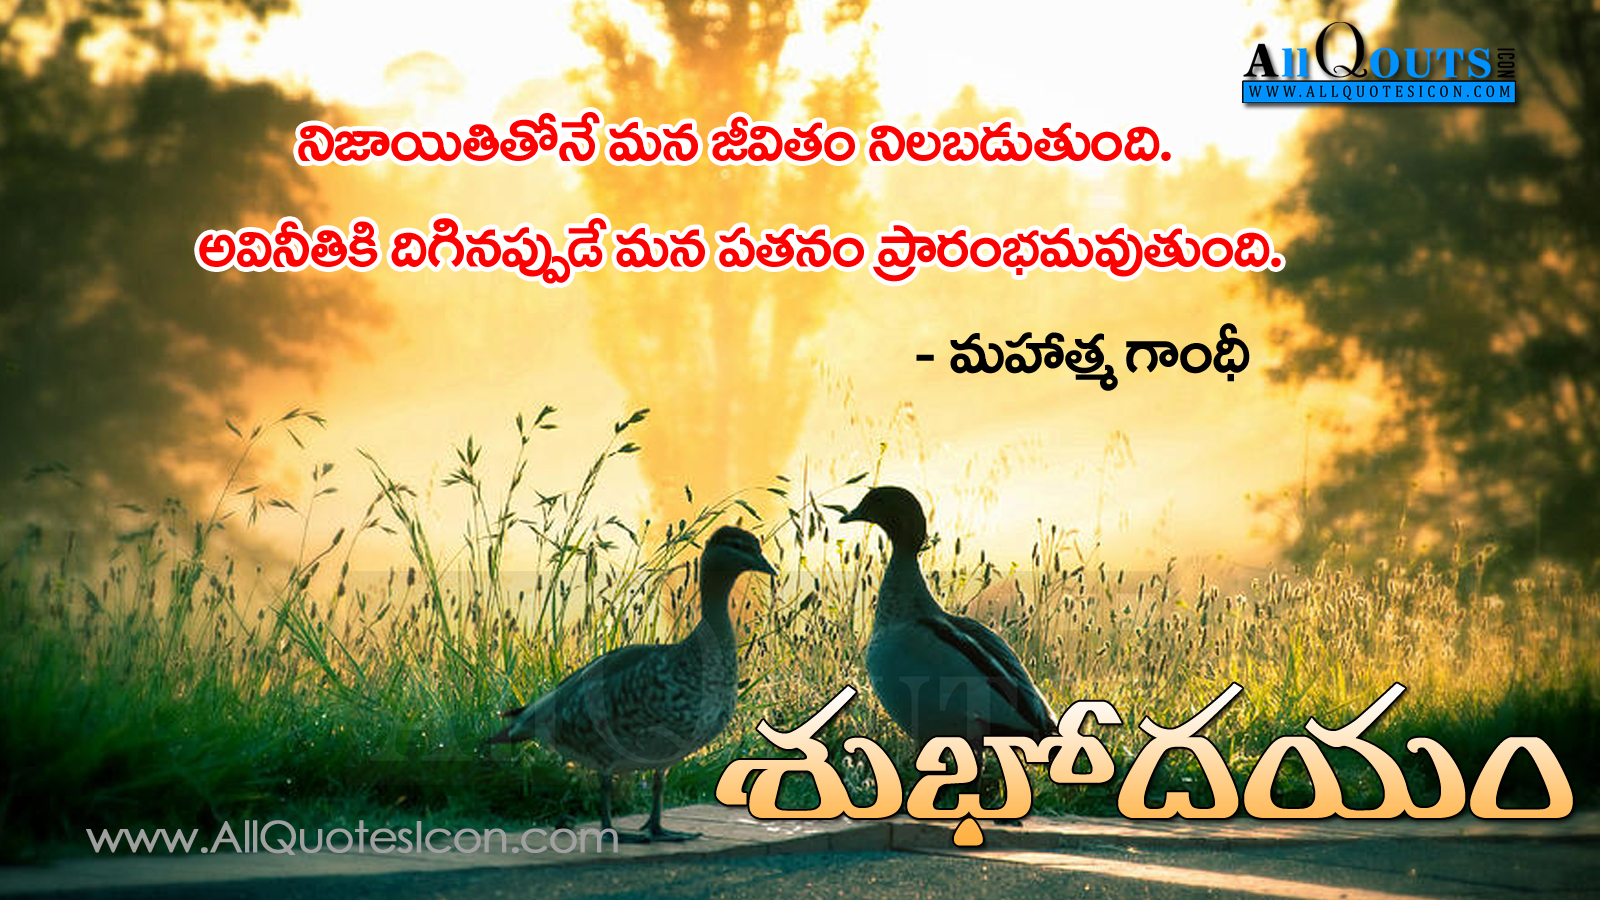 Good Morning Quotes Goodreads : Good morning greetings and images telugu quotations with